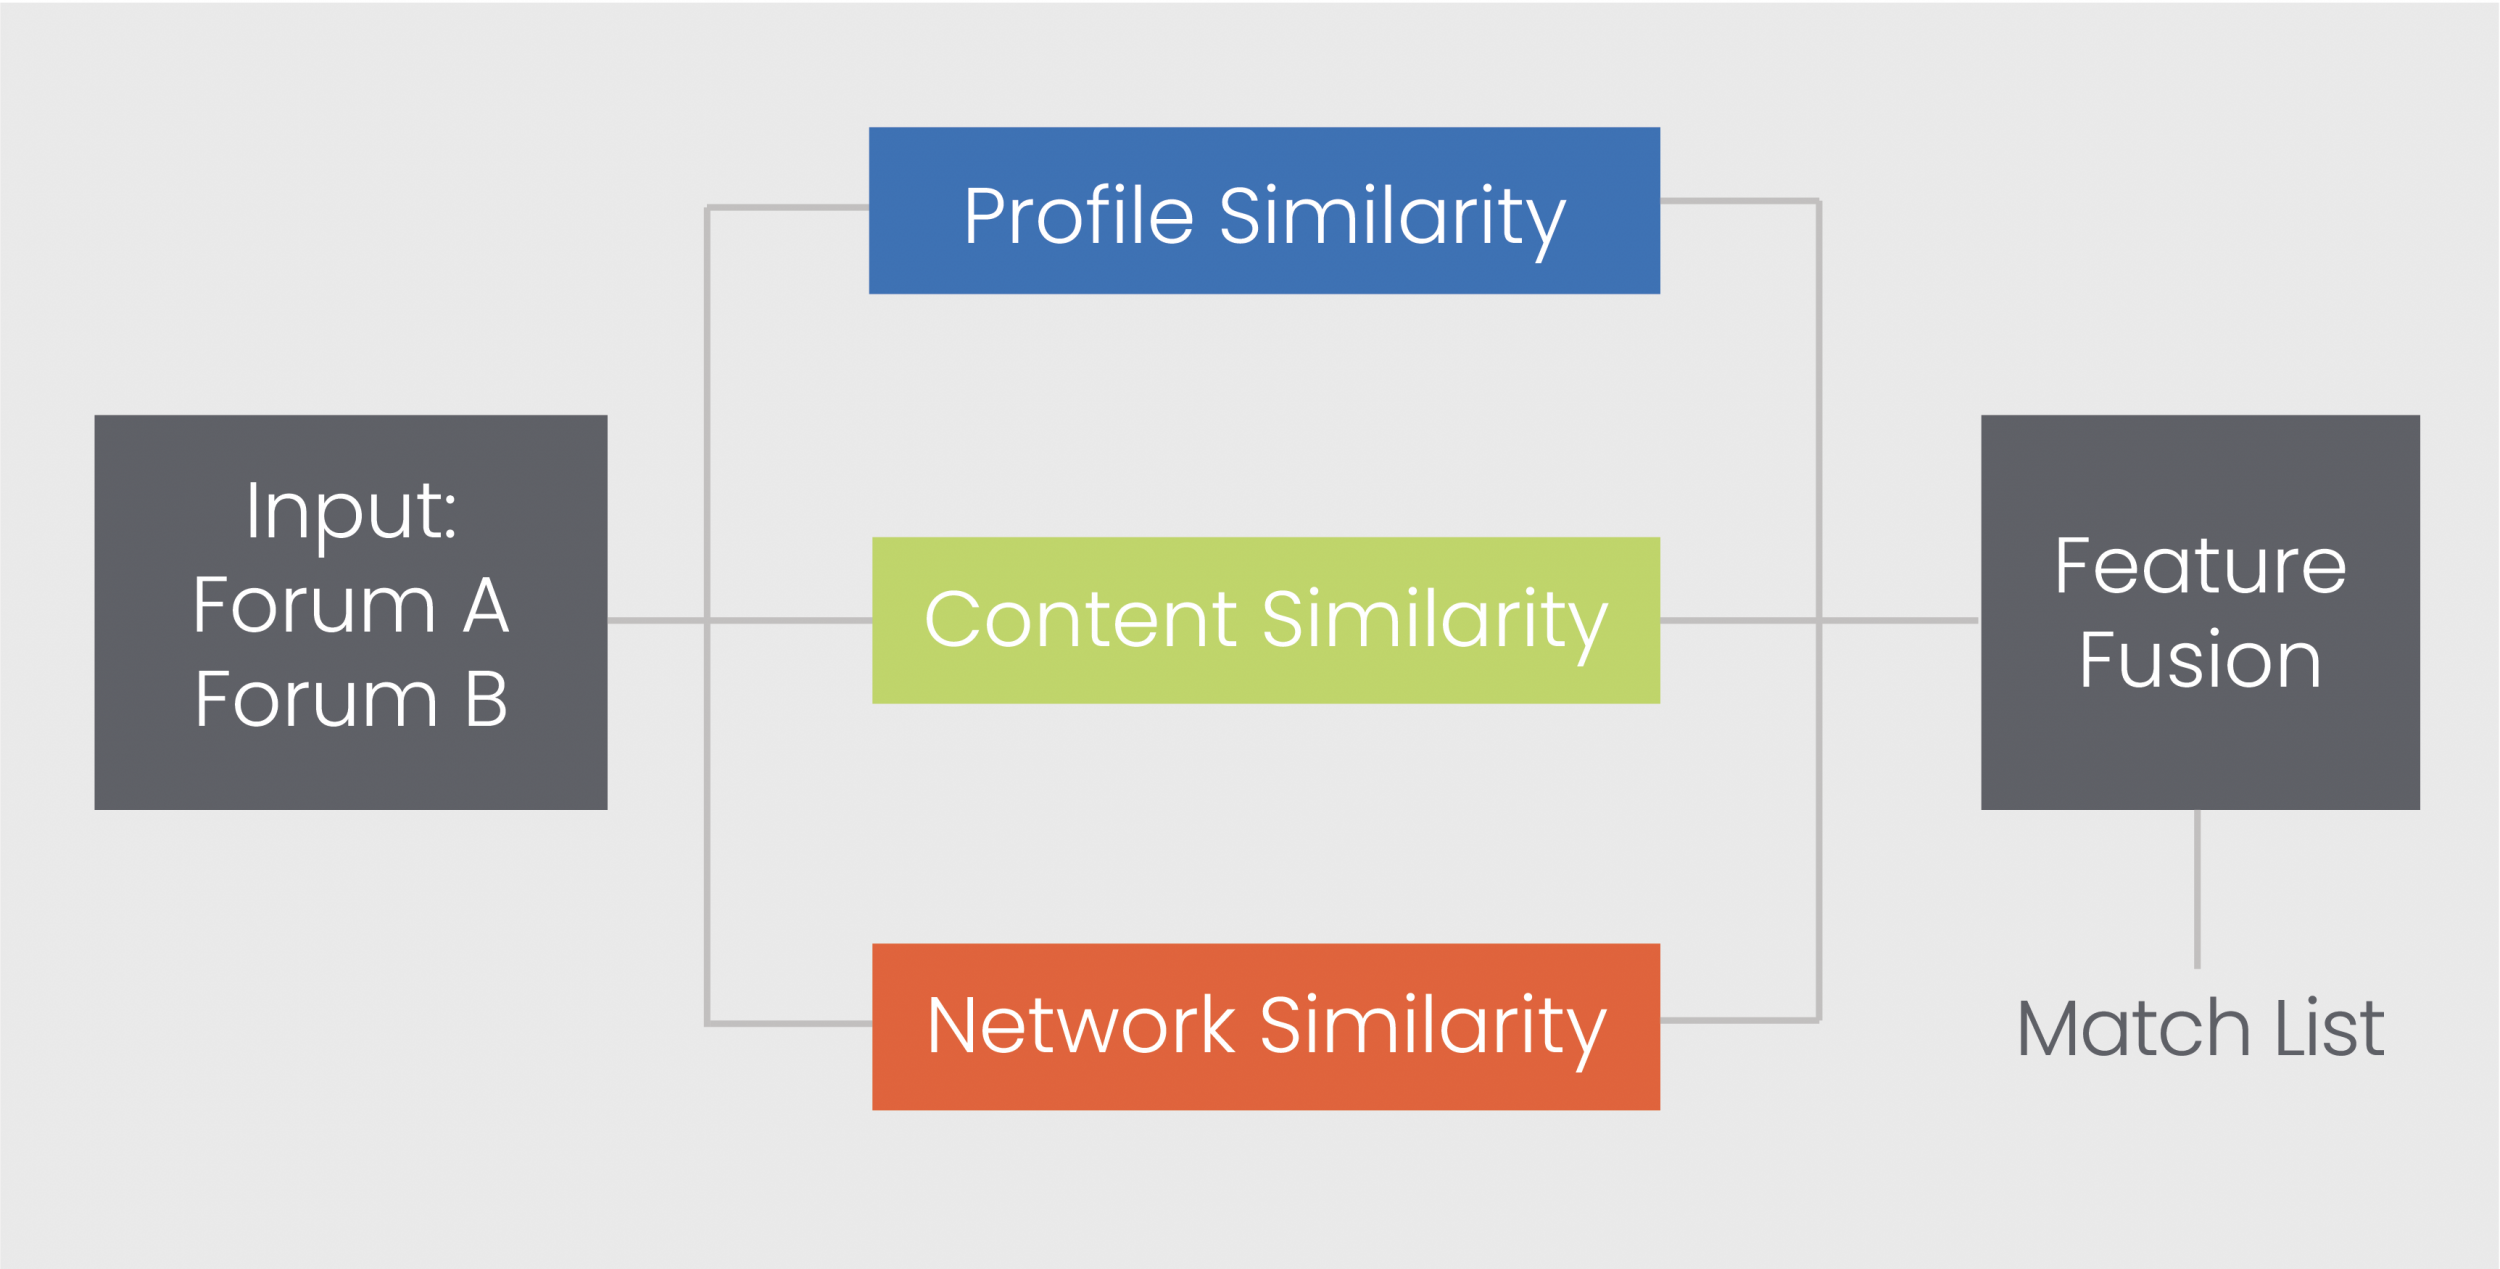 A flow chart shows how input data is scanned for profile, content, and network similarity and is then fused into a match list.